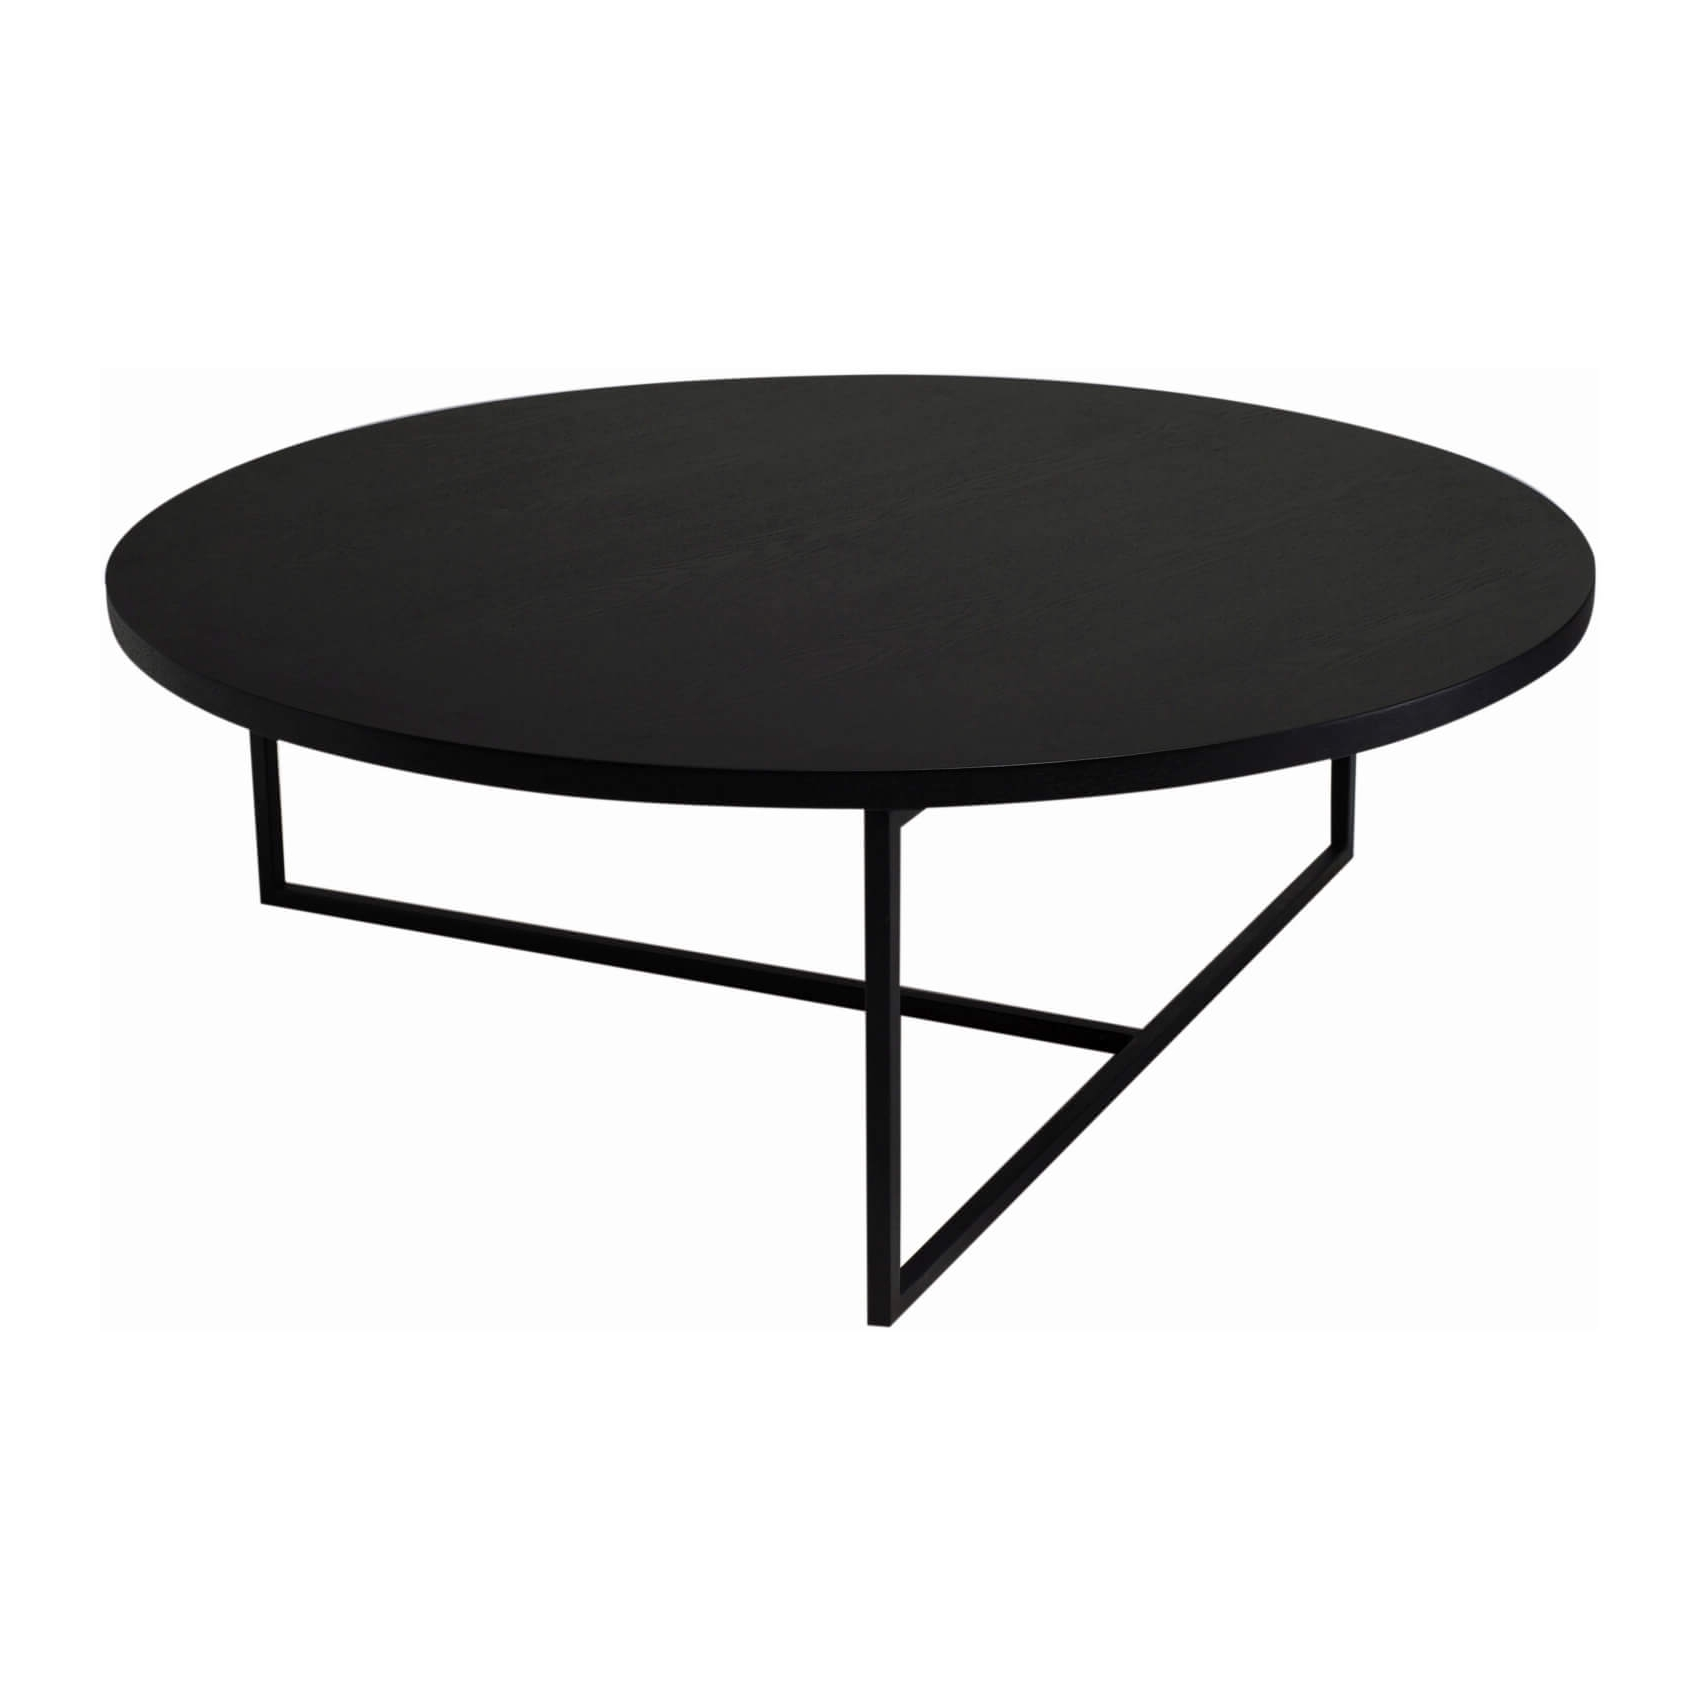 Turner Round Coffee Table – Zillo + Hutch With Regard To Recent Kai Small Coffee Tables (View 19 of 20)